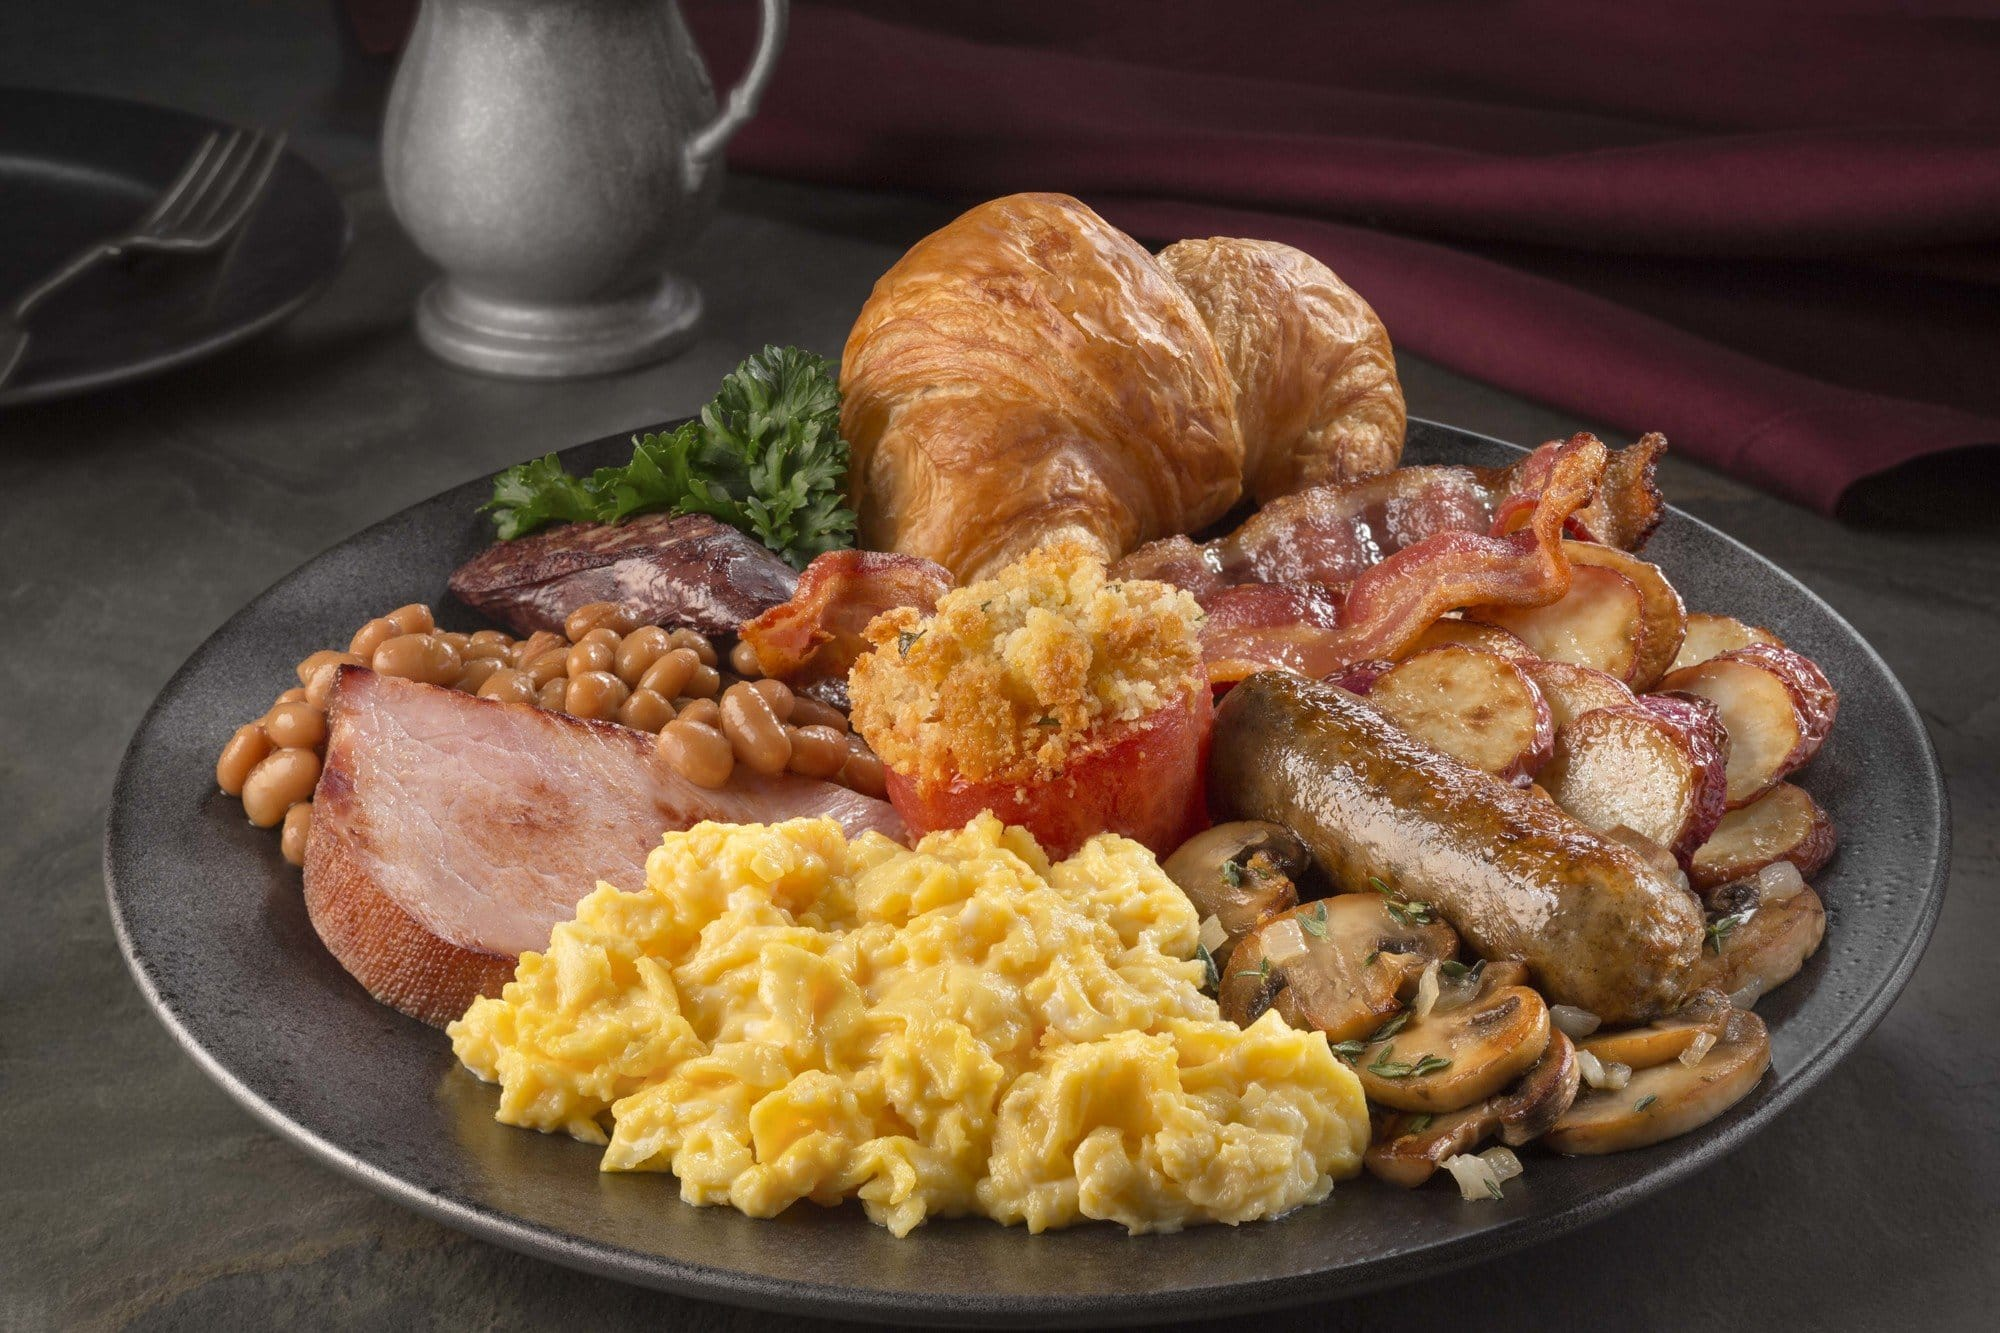 Traditional English breakfast at the Three Broomsticks at Universal Studios Hollywood